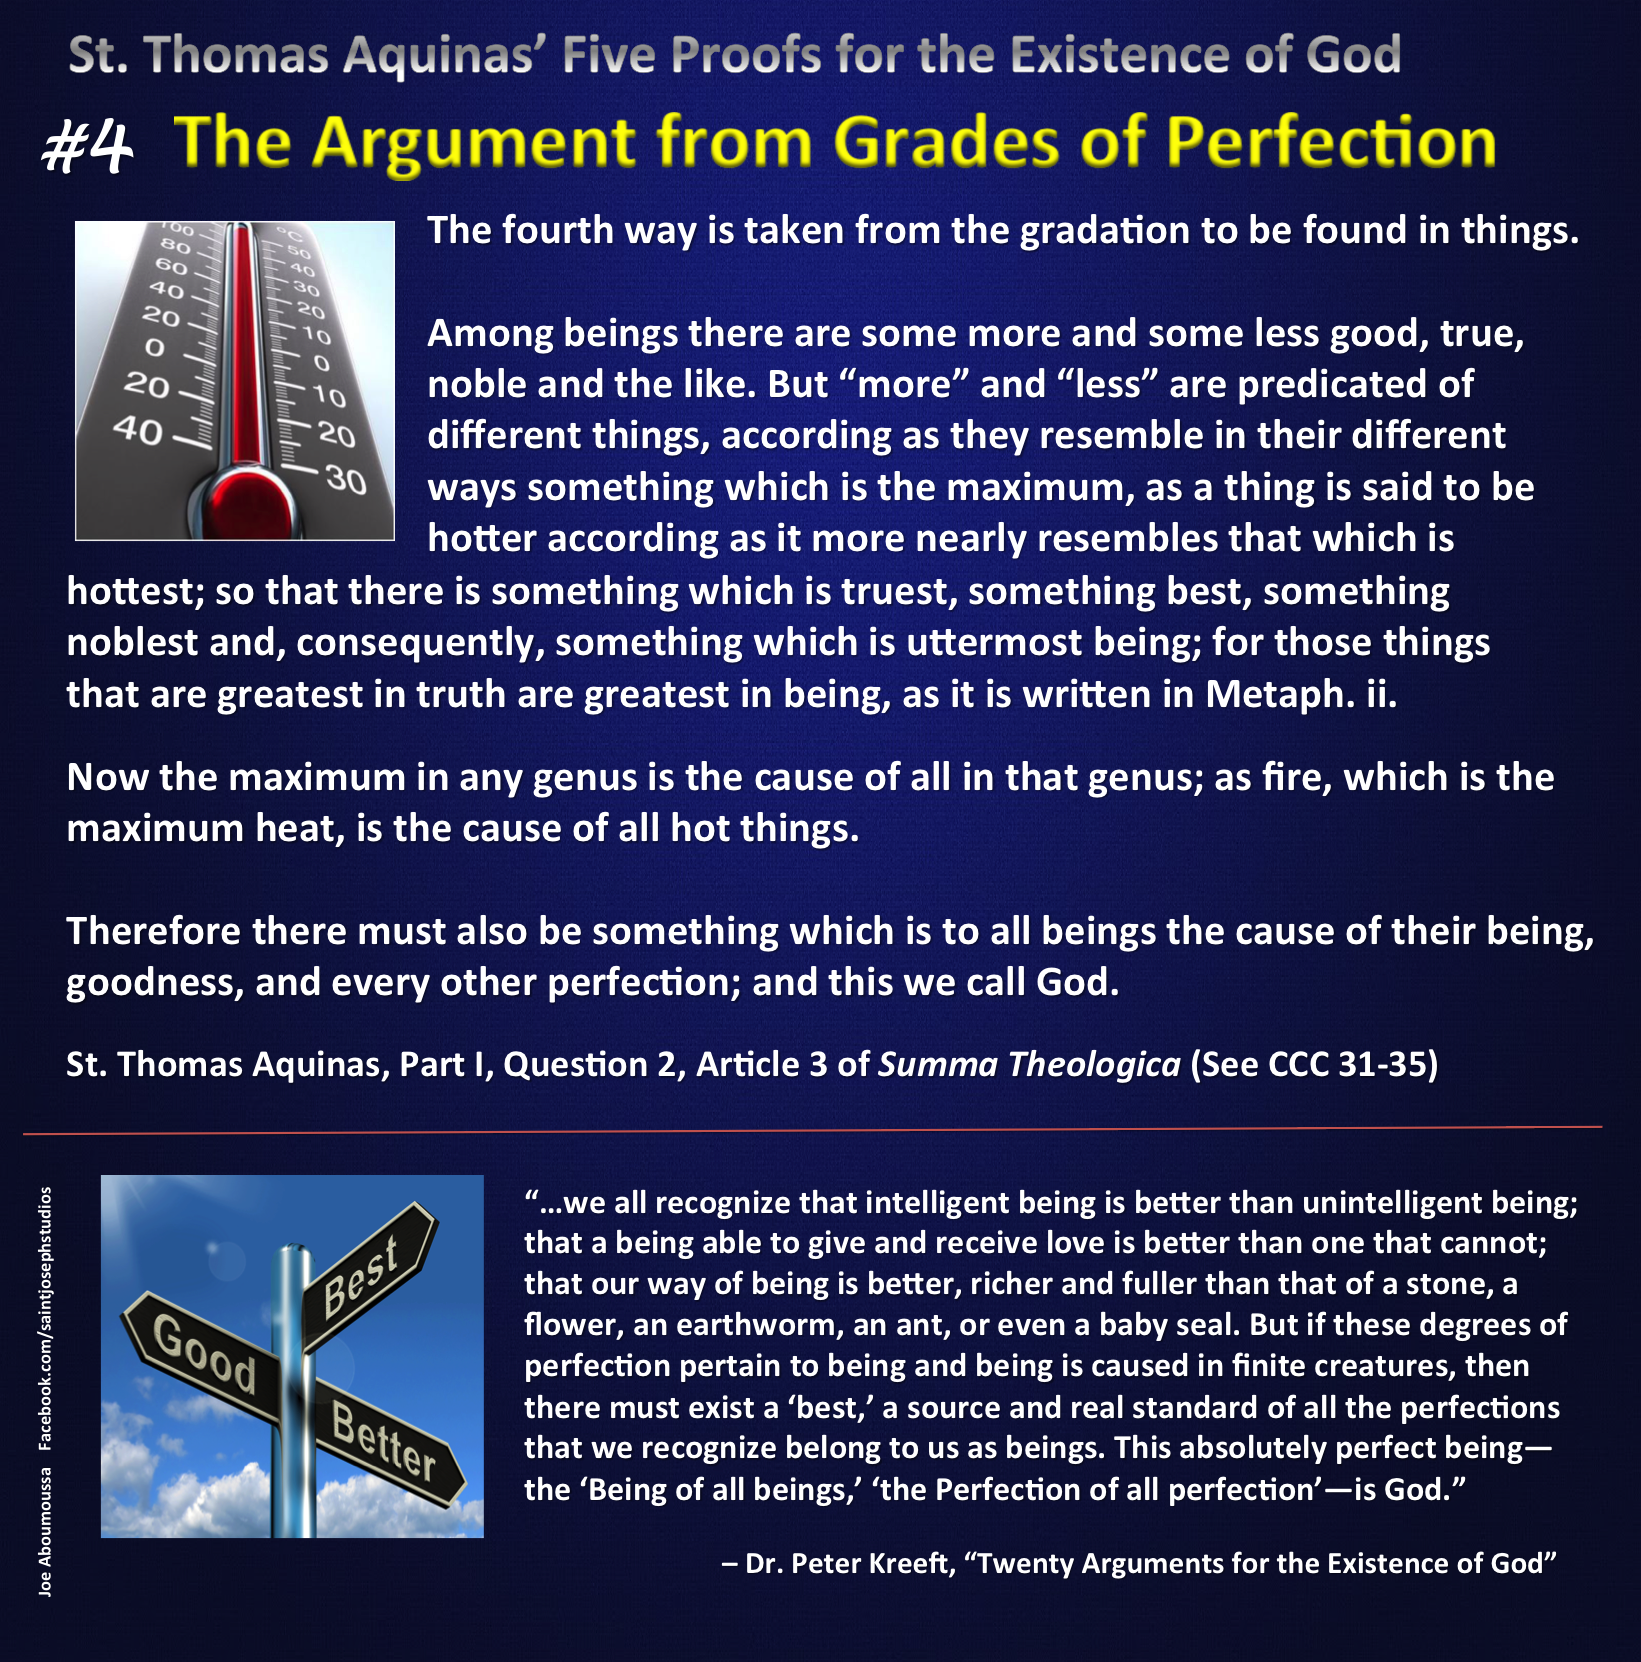 Argument from Grades of Perfection